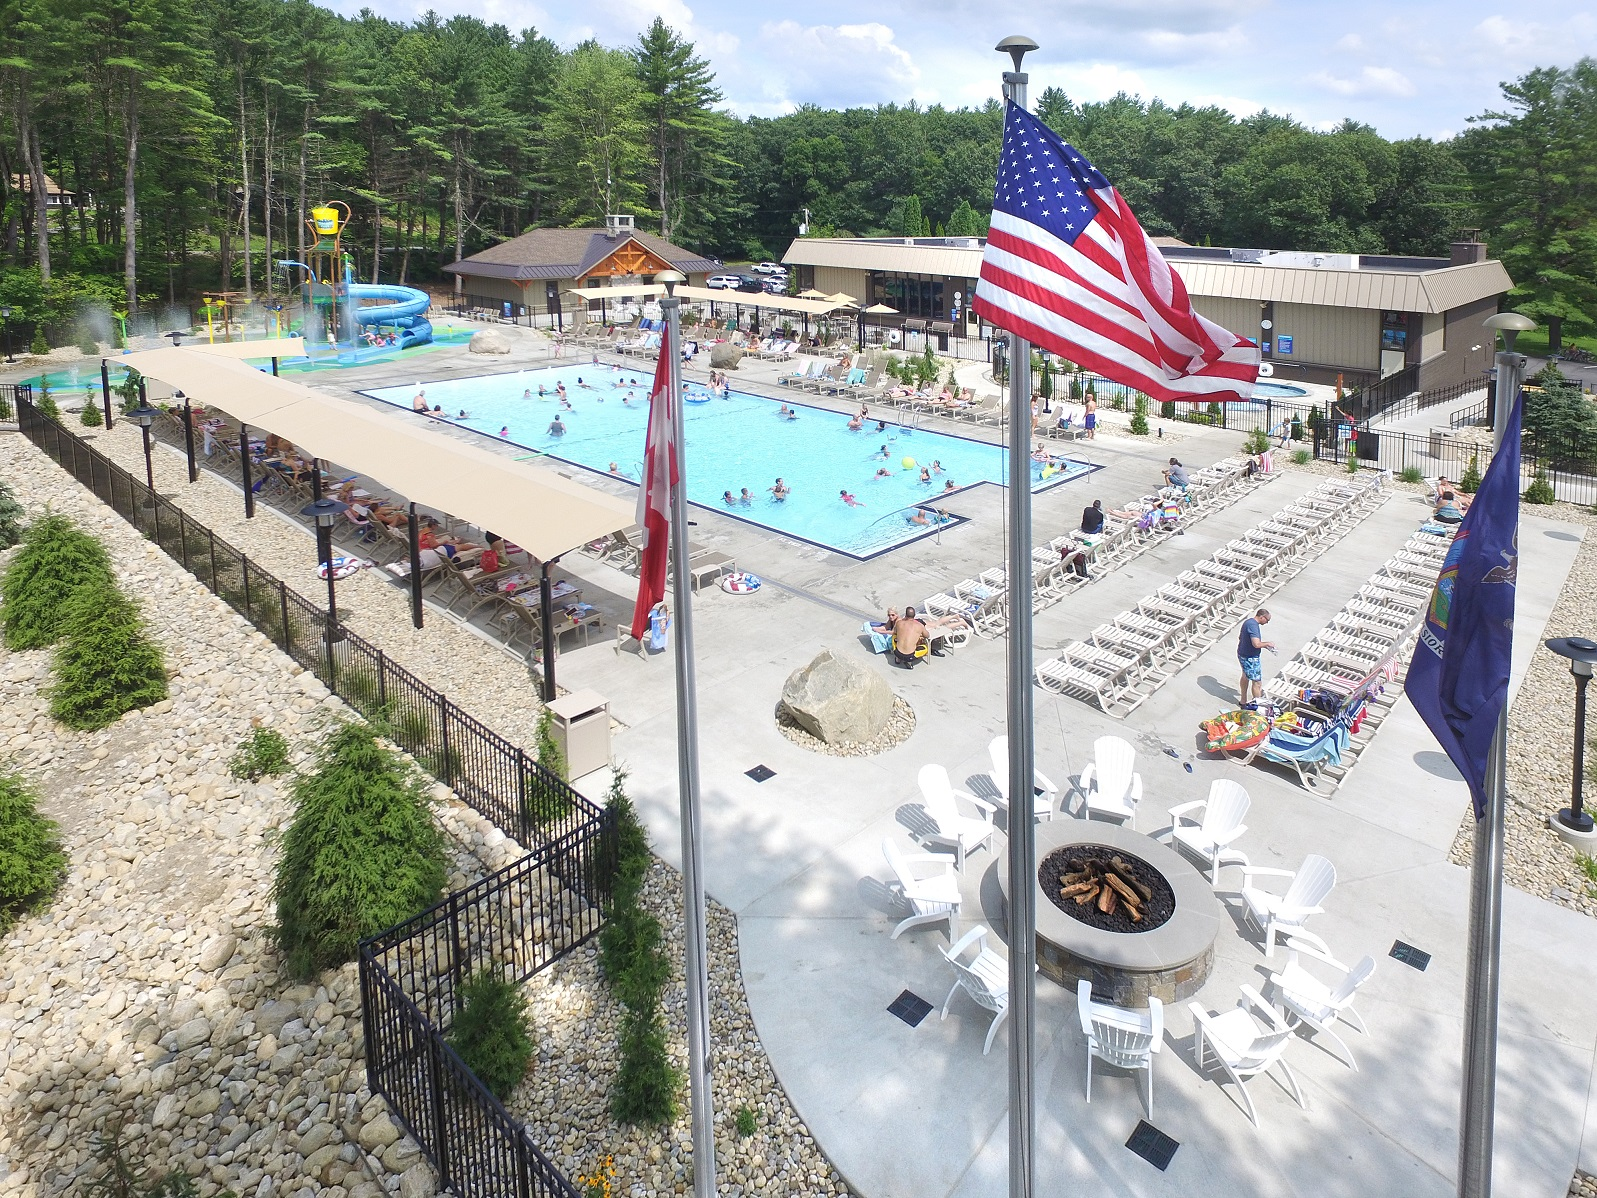 aerial view of Cascade Cove Aquatic Park and bonfire area on pool deck, American and Canada flags blowing in wind in forground